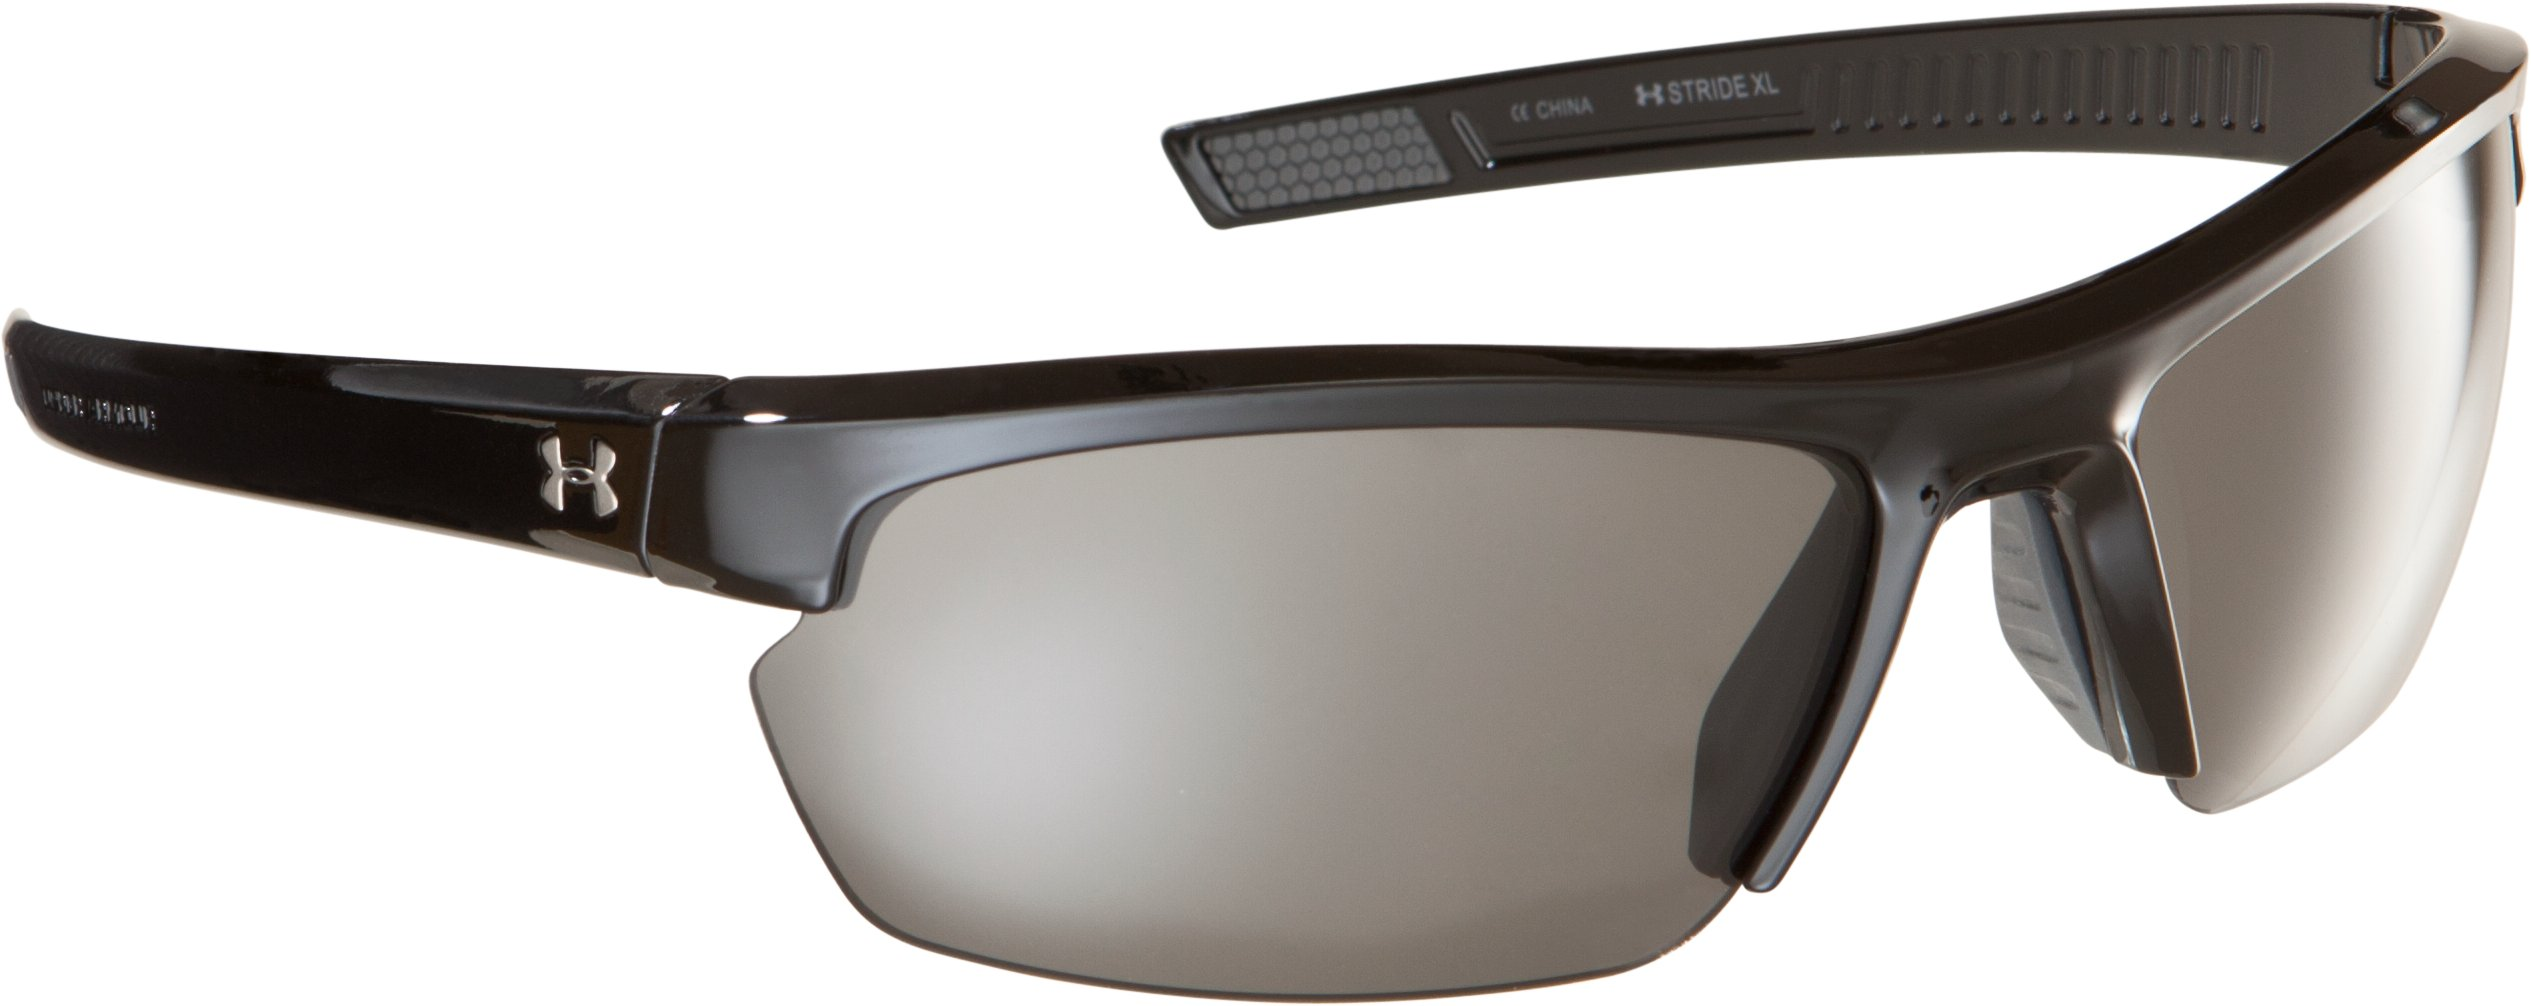 UA Stride XL Sunglasses, Shiny Black